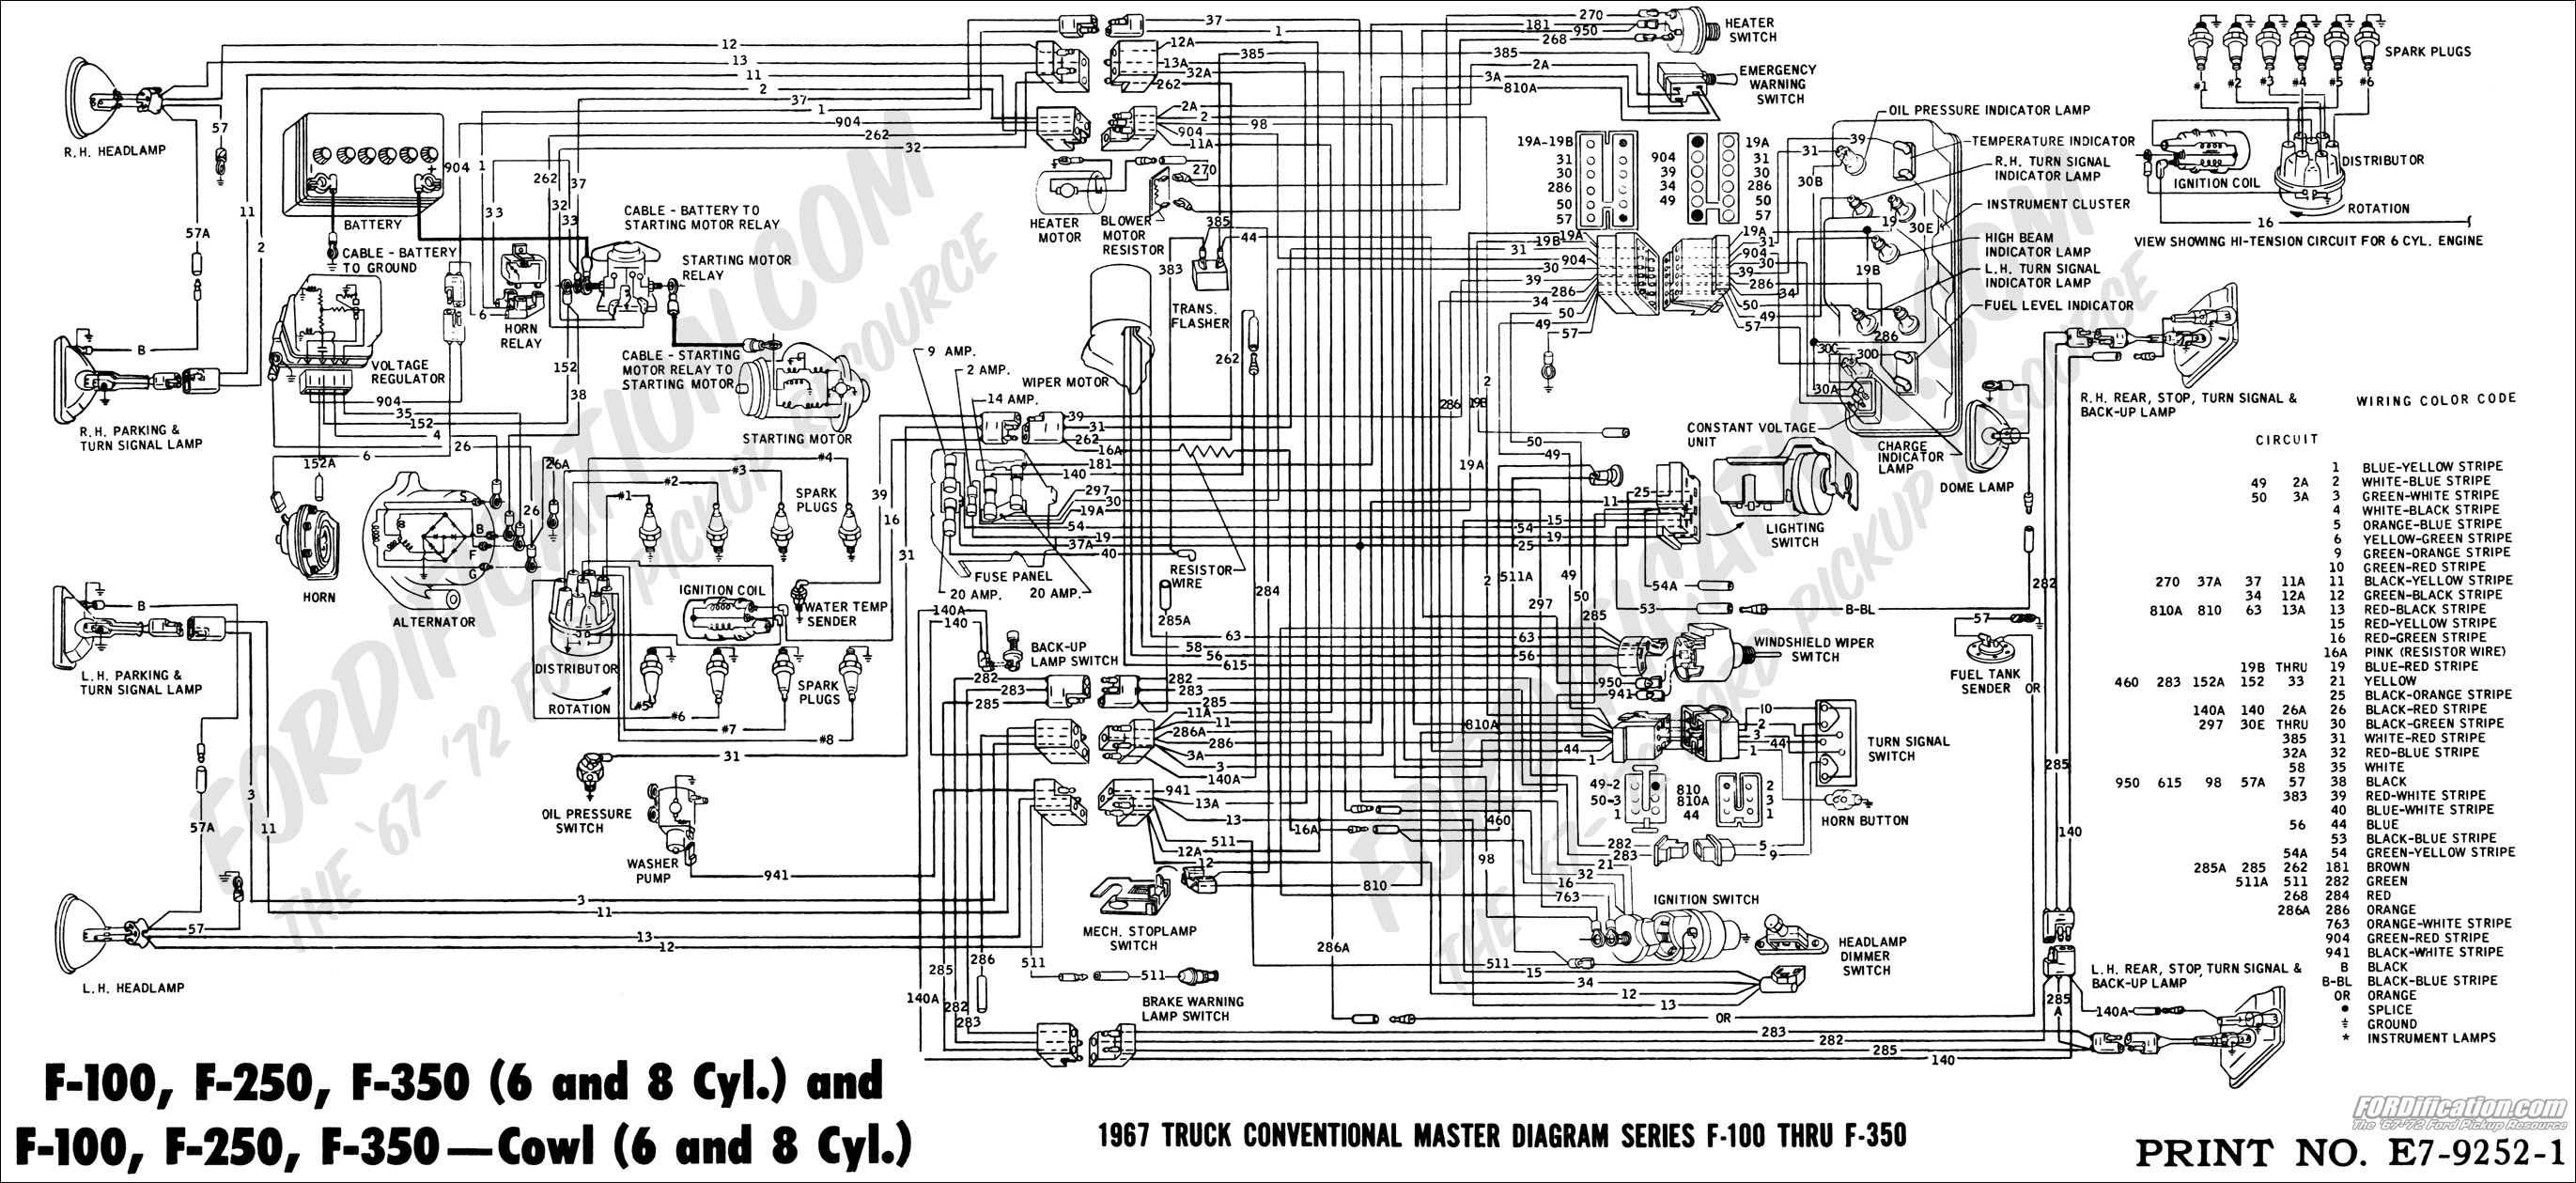 1995 F150 Cooling Diagram Trusted Schematics Ford Explorer Heated Seat Wiring 89 Detailed F250 1988